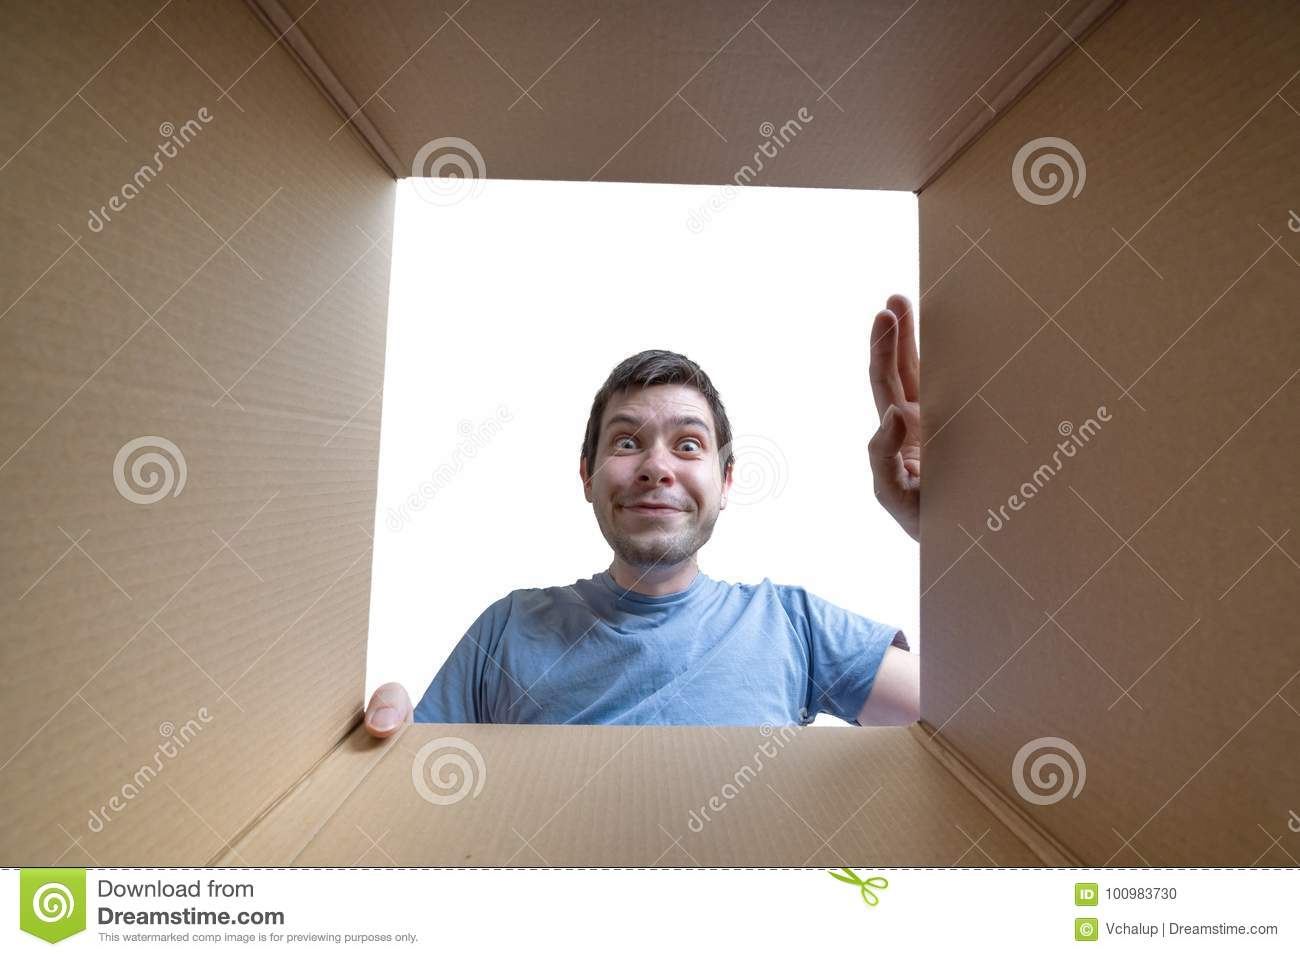 Young happy man is opening gift and looking inside cardboard box